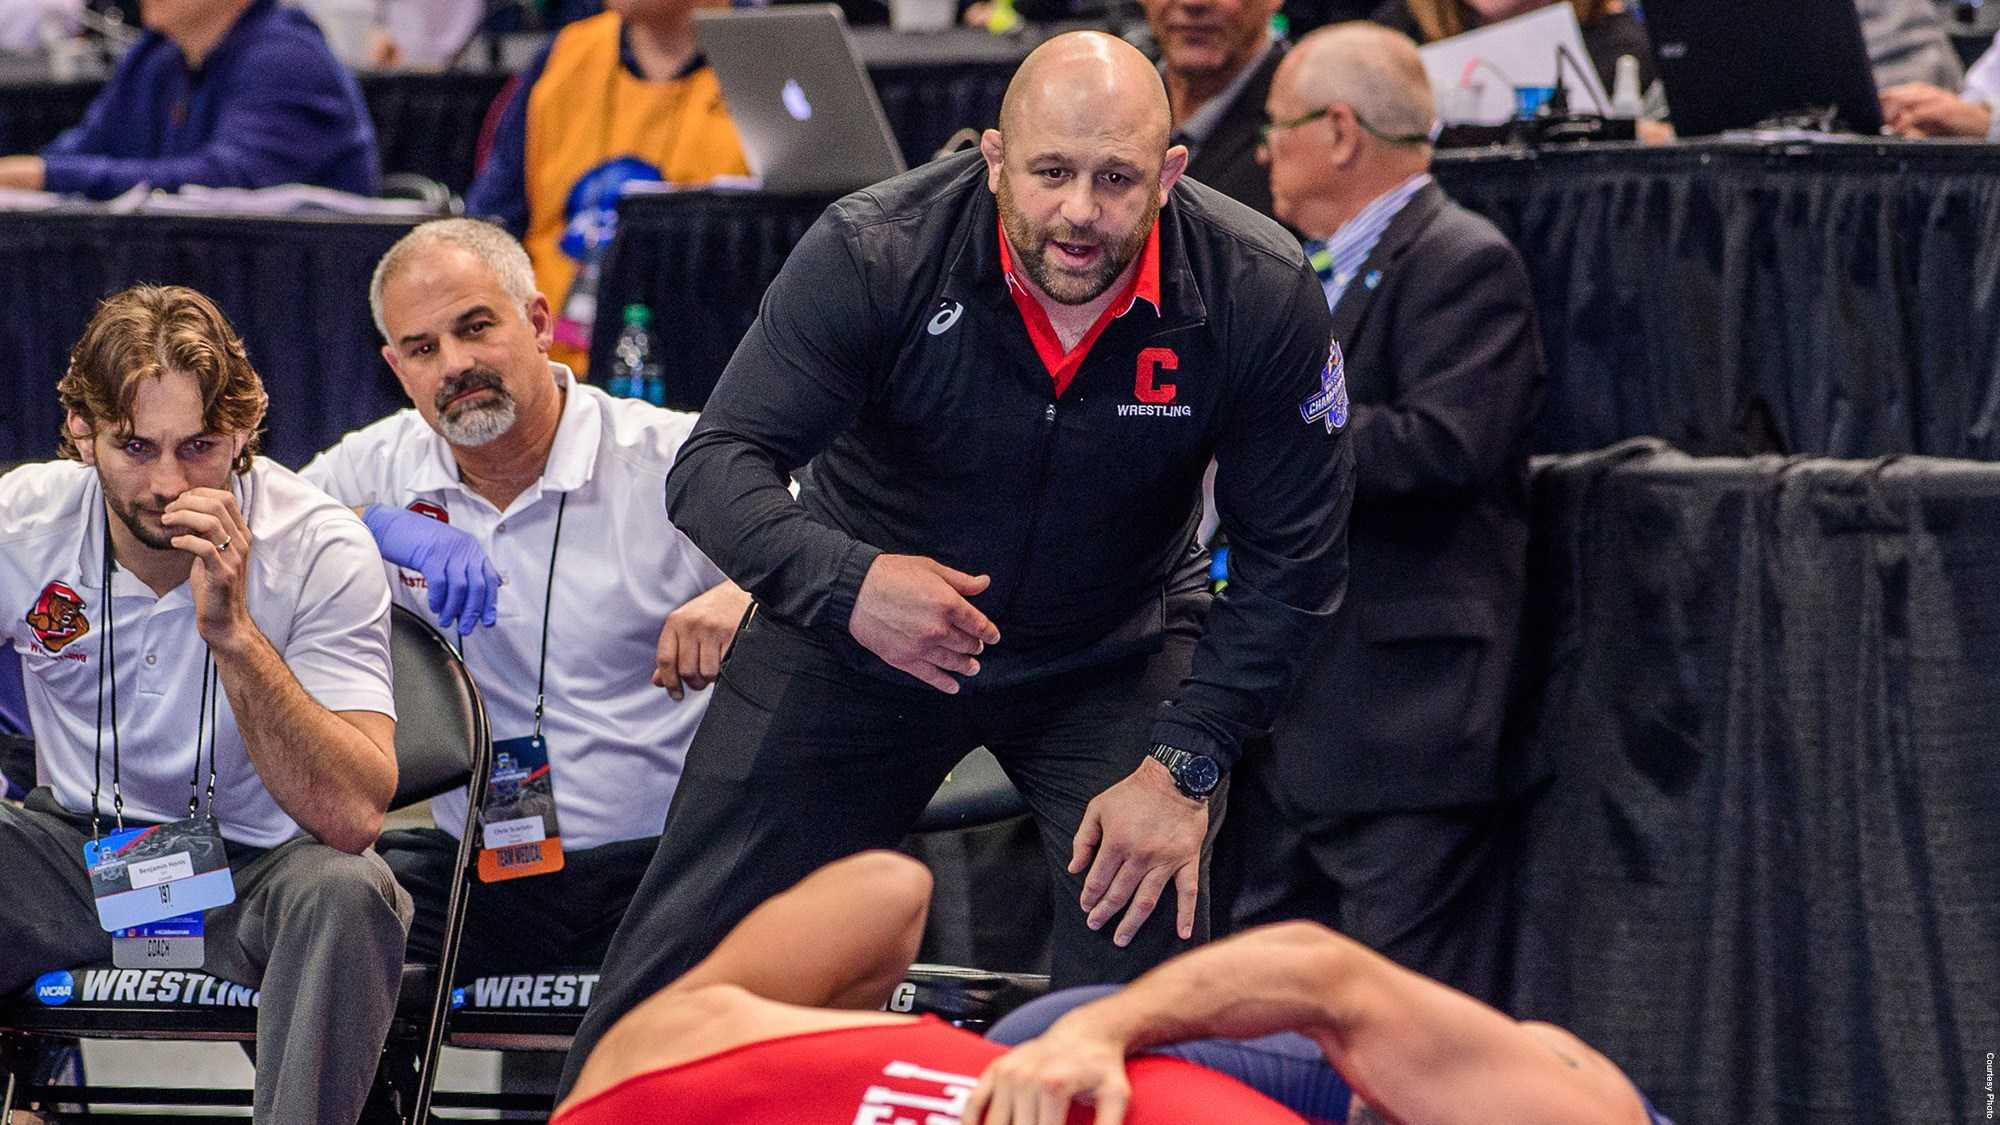 Damian Hahn was an assistant and associate coach for Cornell for 12 years. During his tenure, the Big Red won 11 Eastern Intercollegiate Wrestling Association titles and had 50 All-Americans.